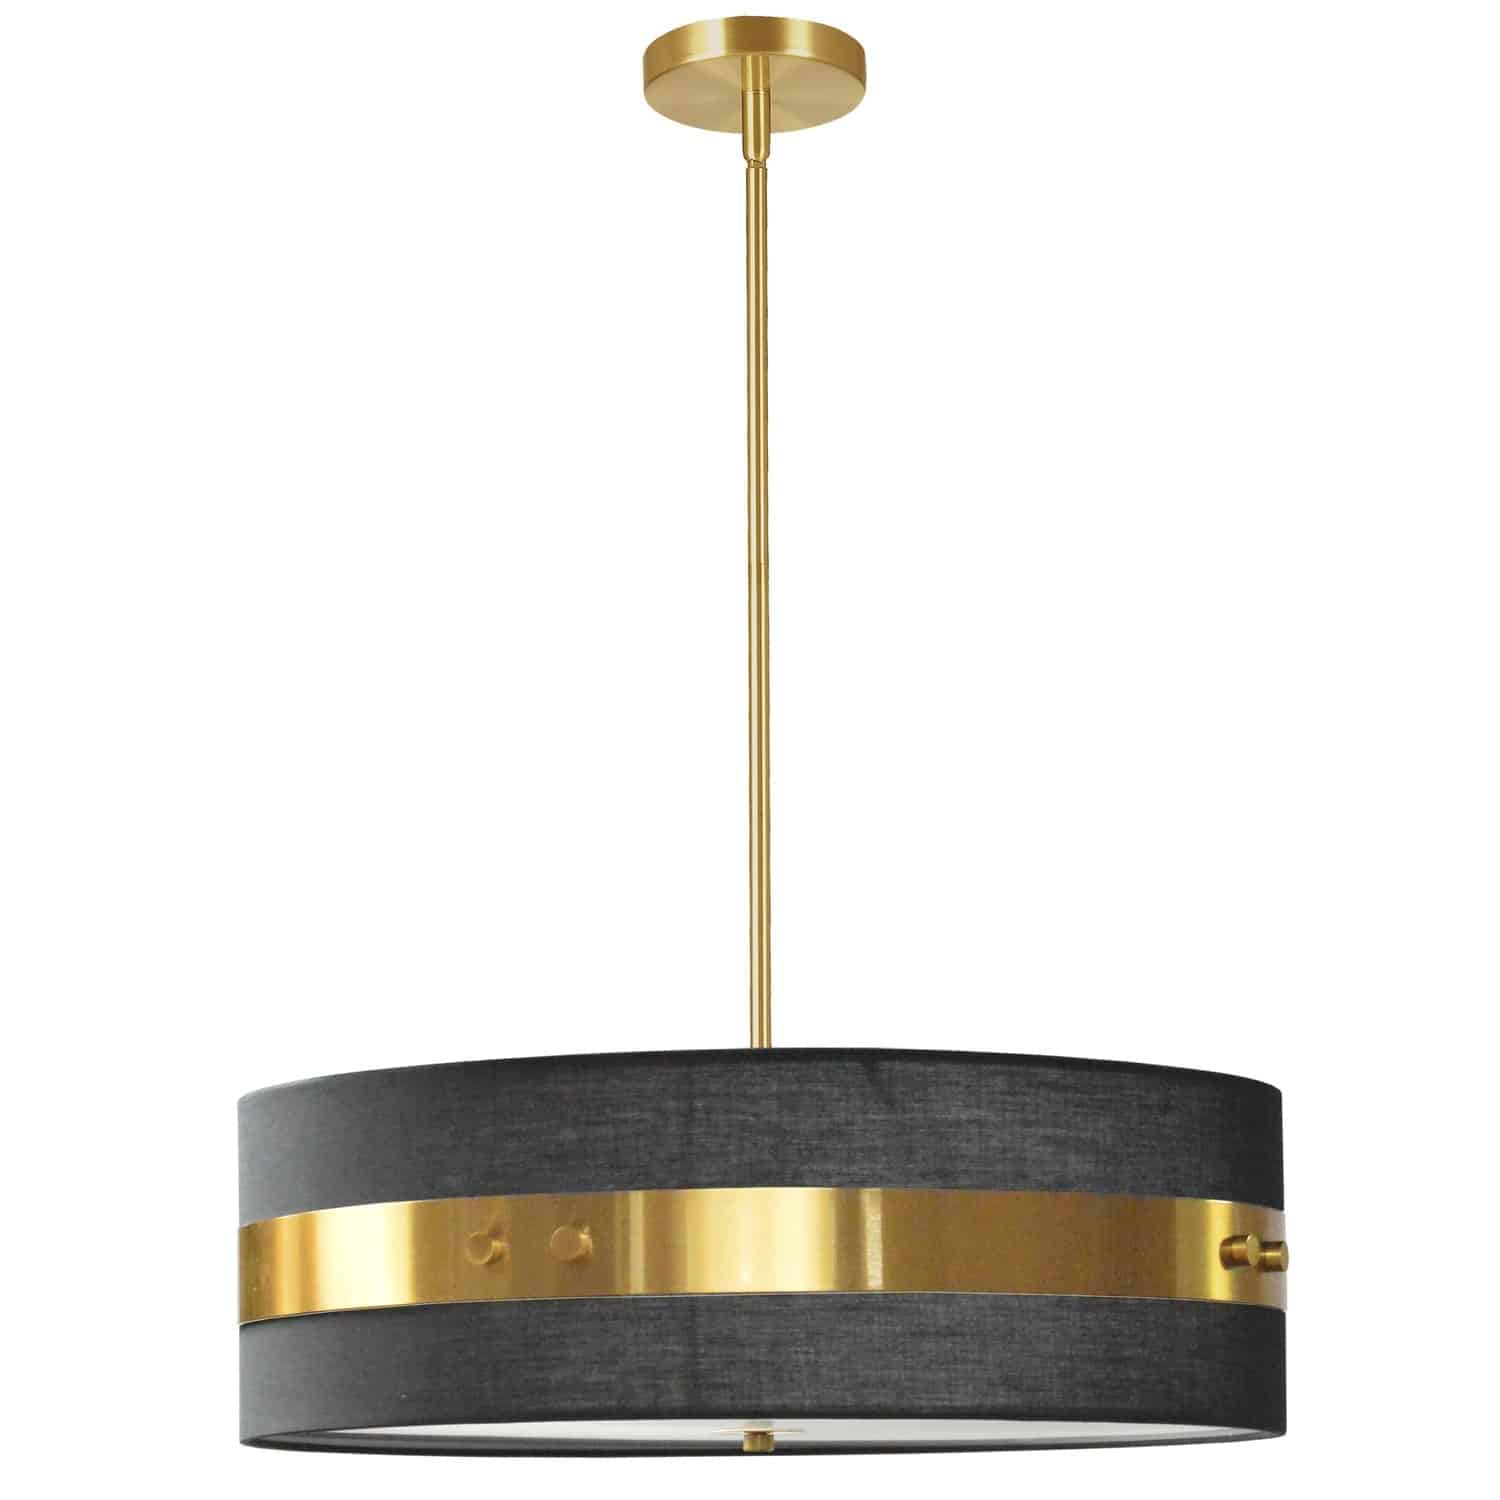 4 Light Incandescent Pendant Aged Brass Finish with Black Shade